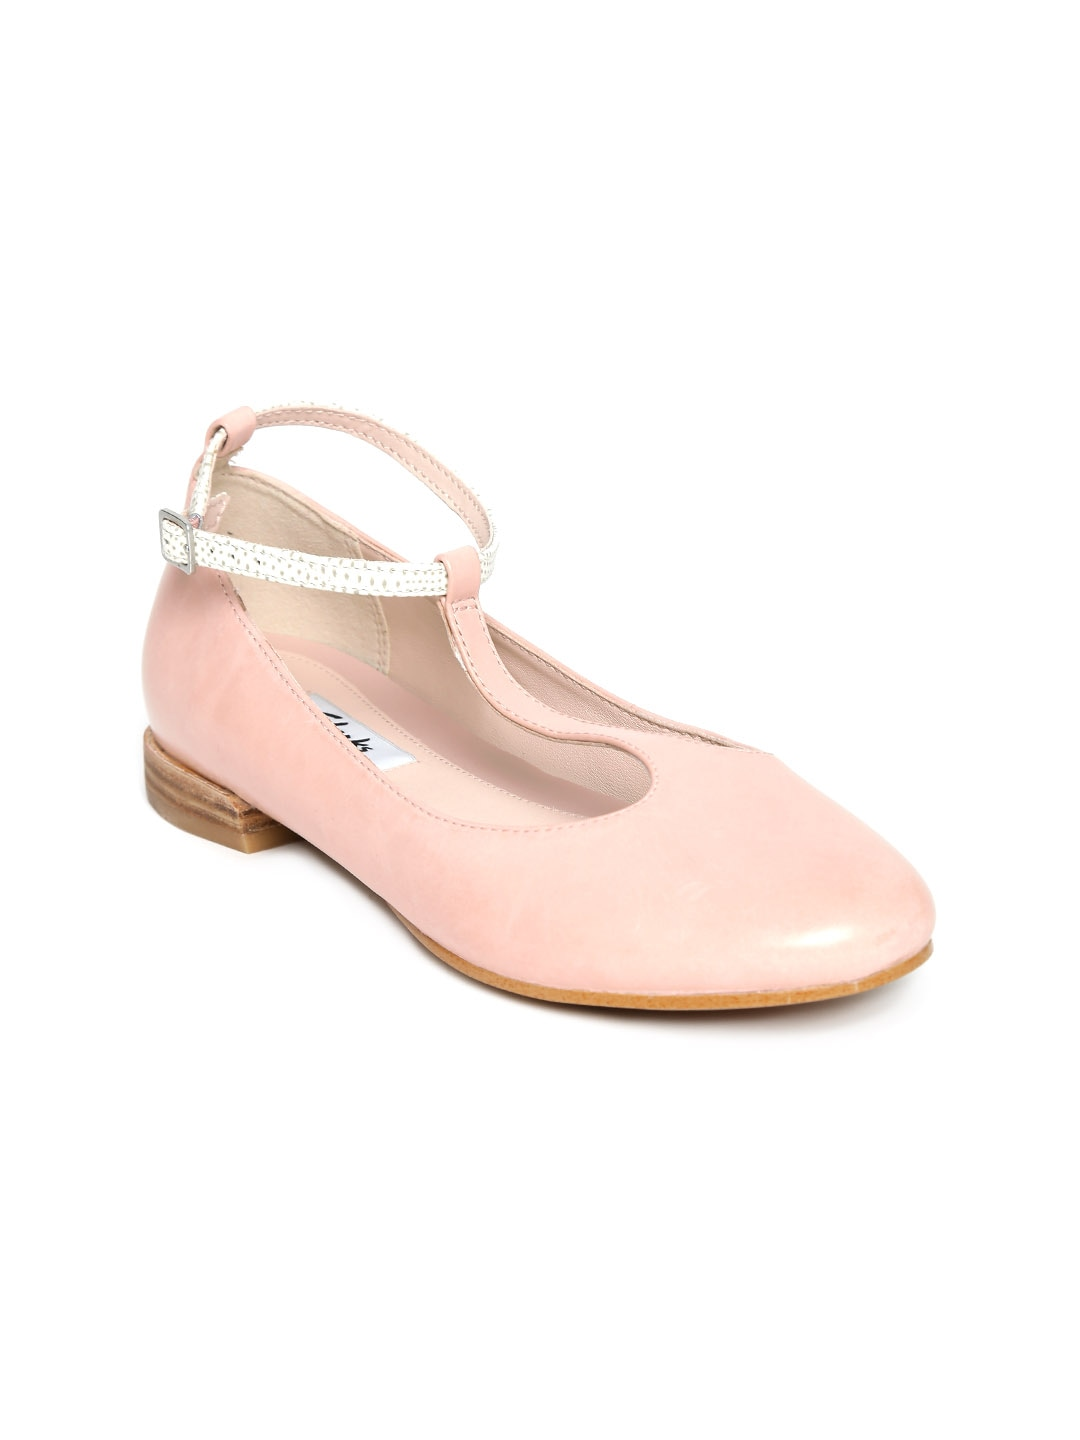 Clarks Women Pink Leather Flat Shoes